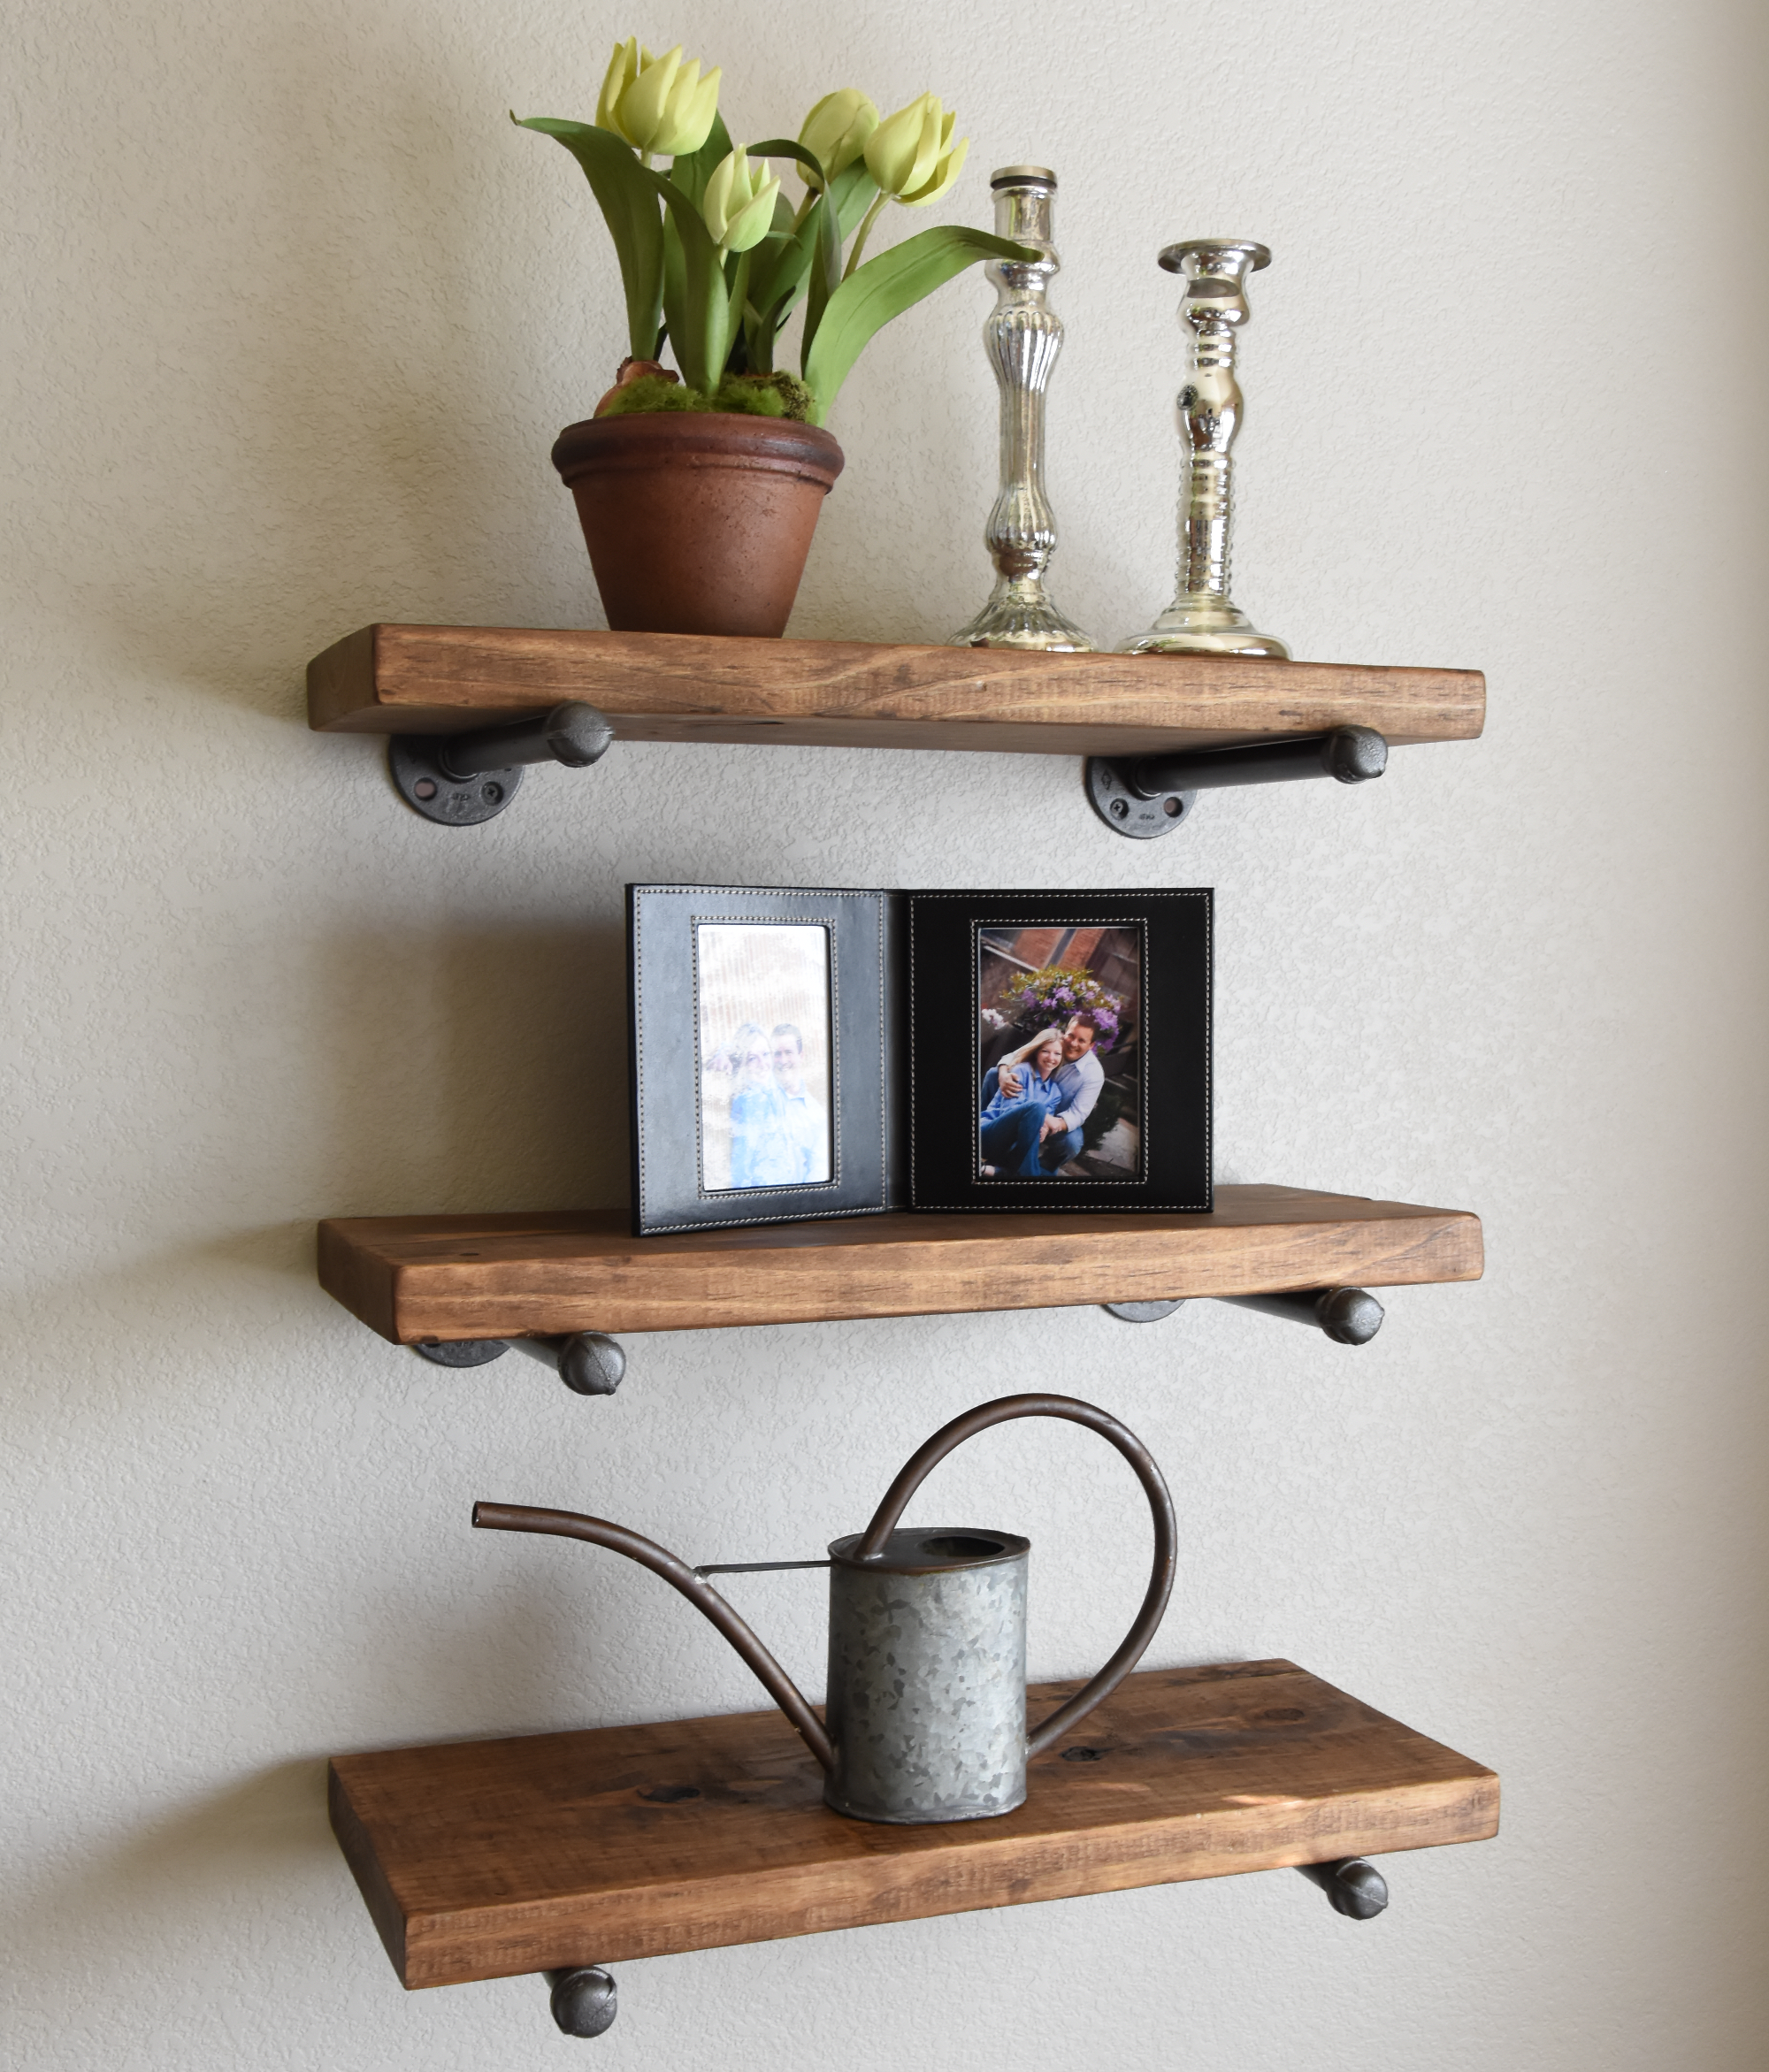 custom industrial rustic floating shelf made order from first look three shelves edna faye creations custommade lack wall weight limit round ikea pins bunnings concealed mounting